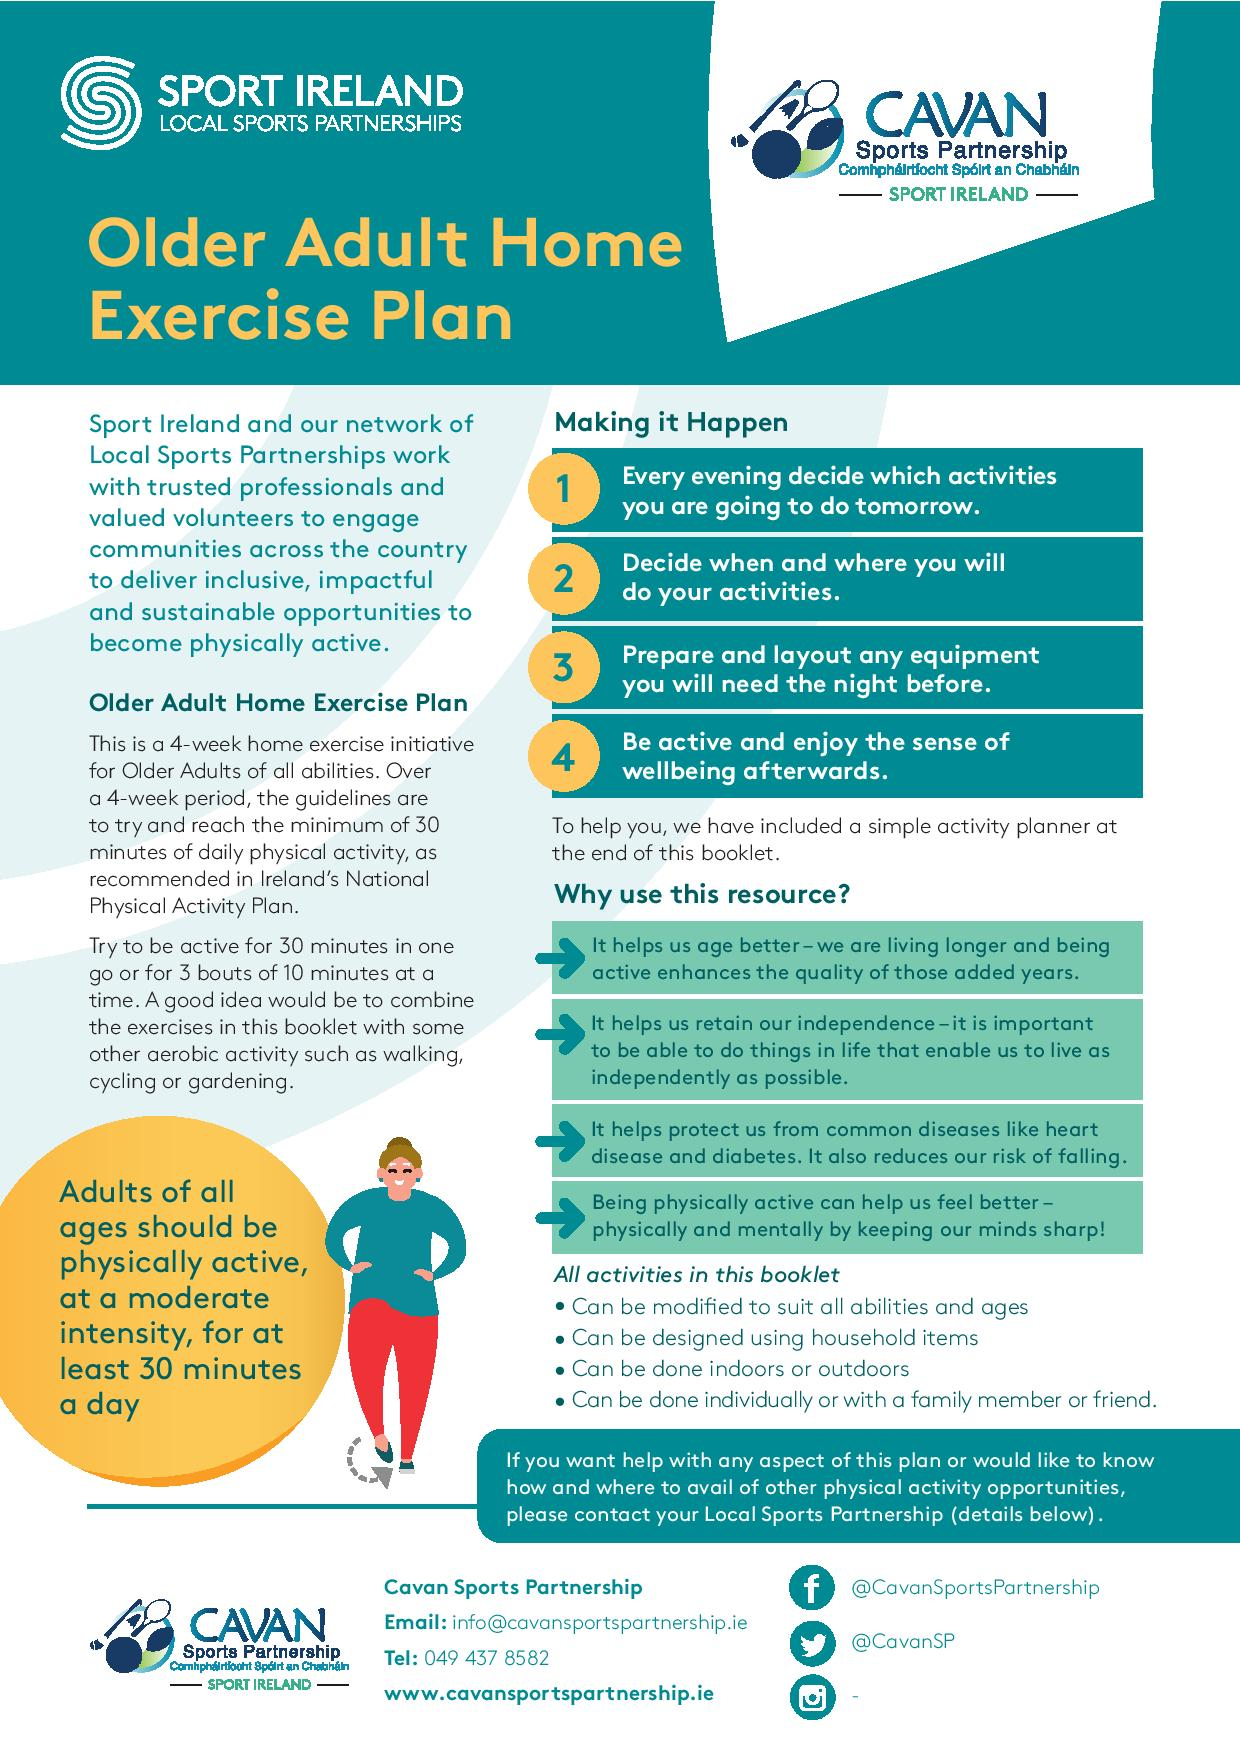 Home Exercise Plan for Active Adults 50+